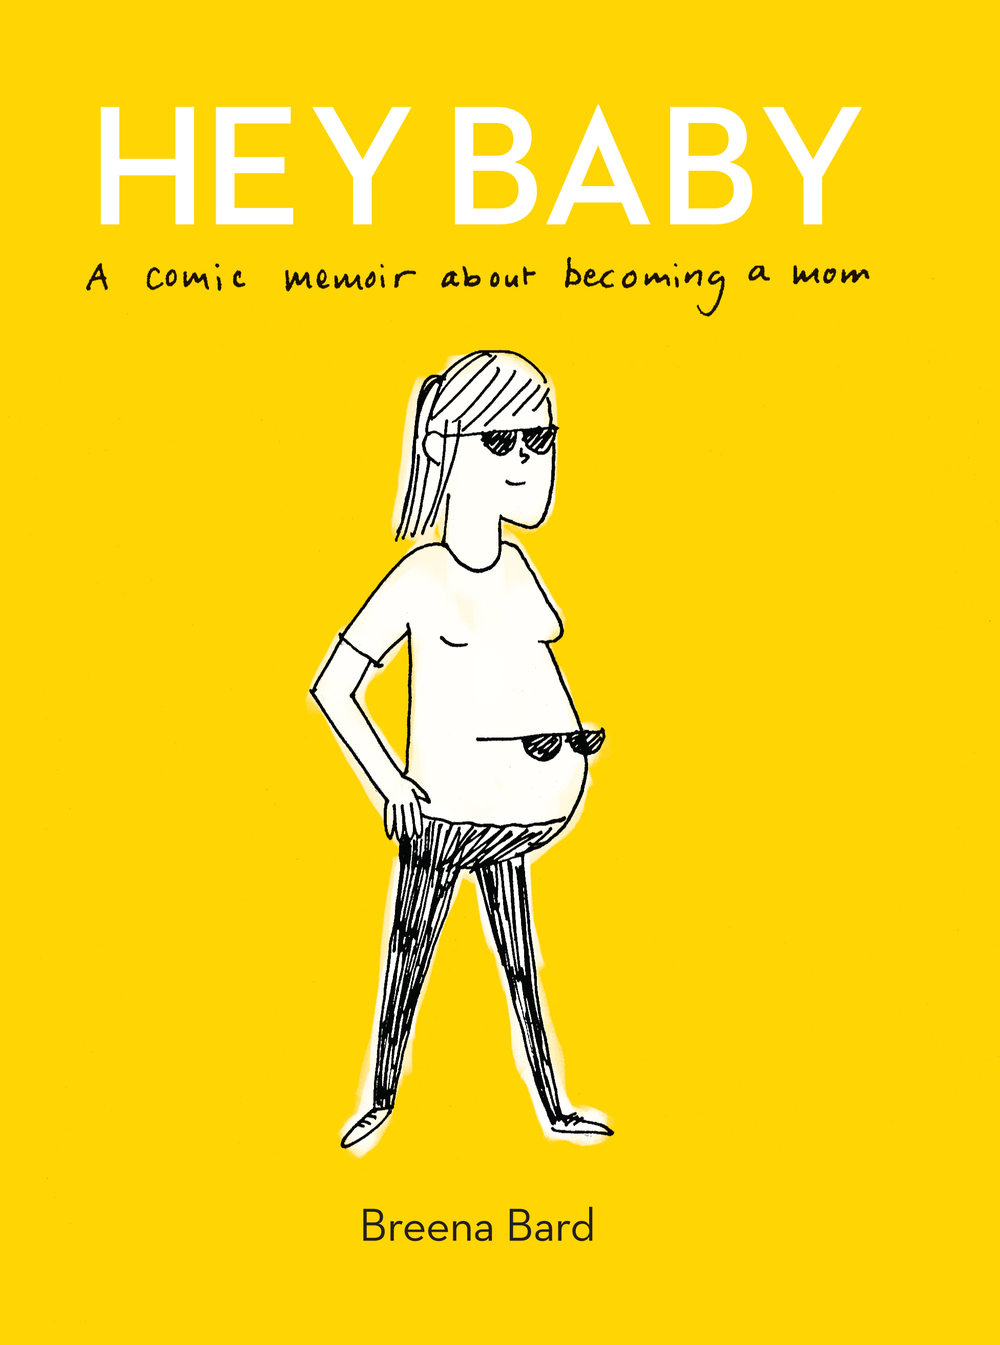 Now available! My brand new comic memoir about becoming a mom.   Get it!